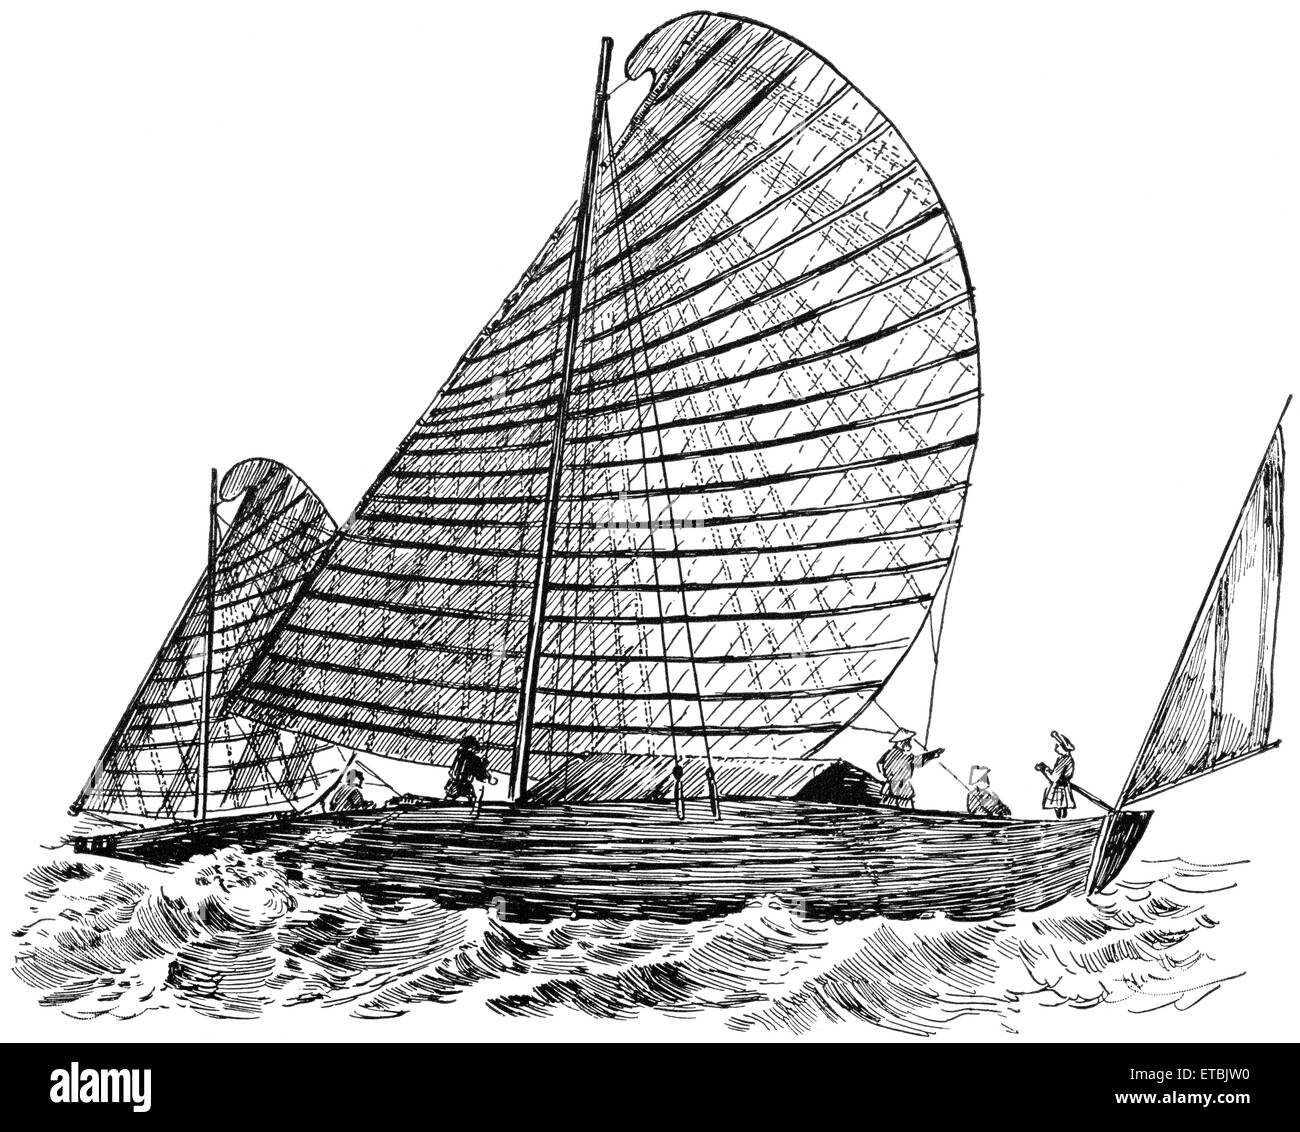 Primitive Sailboat, Gulf of Tonkin, China, 'Classical Portfolio of Primitive Carriers', by Marshall M. Kirman, - Stock Image